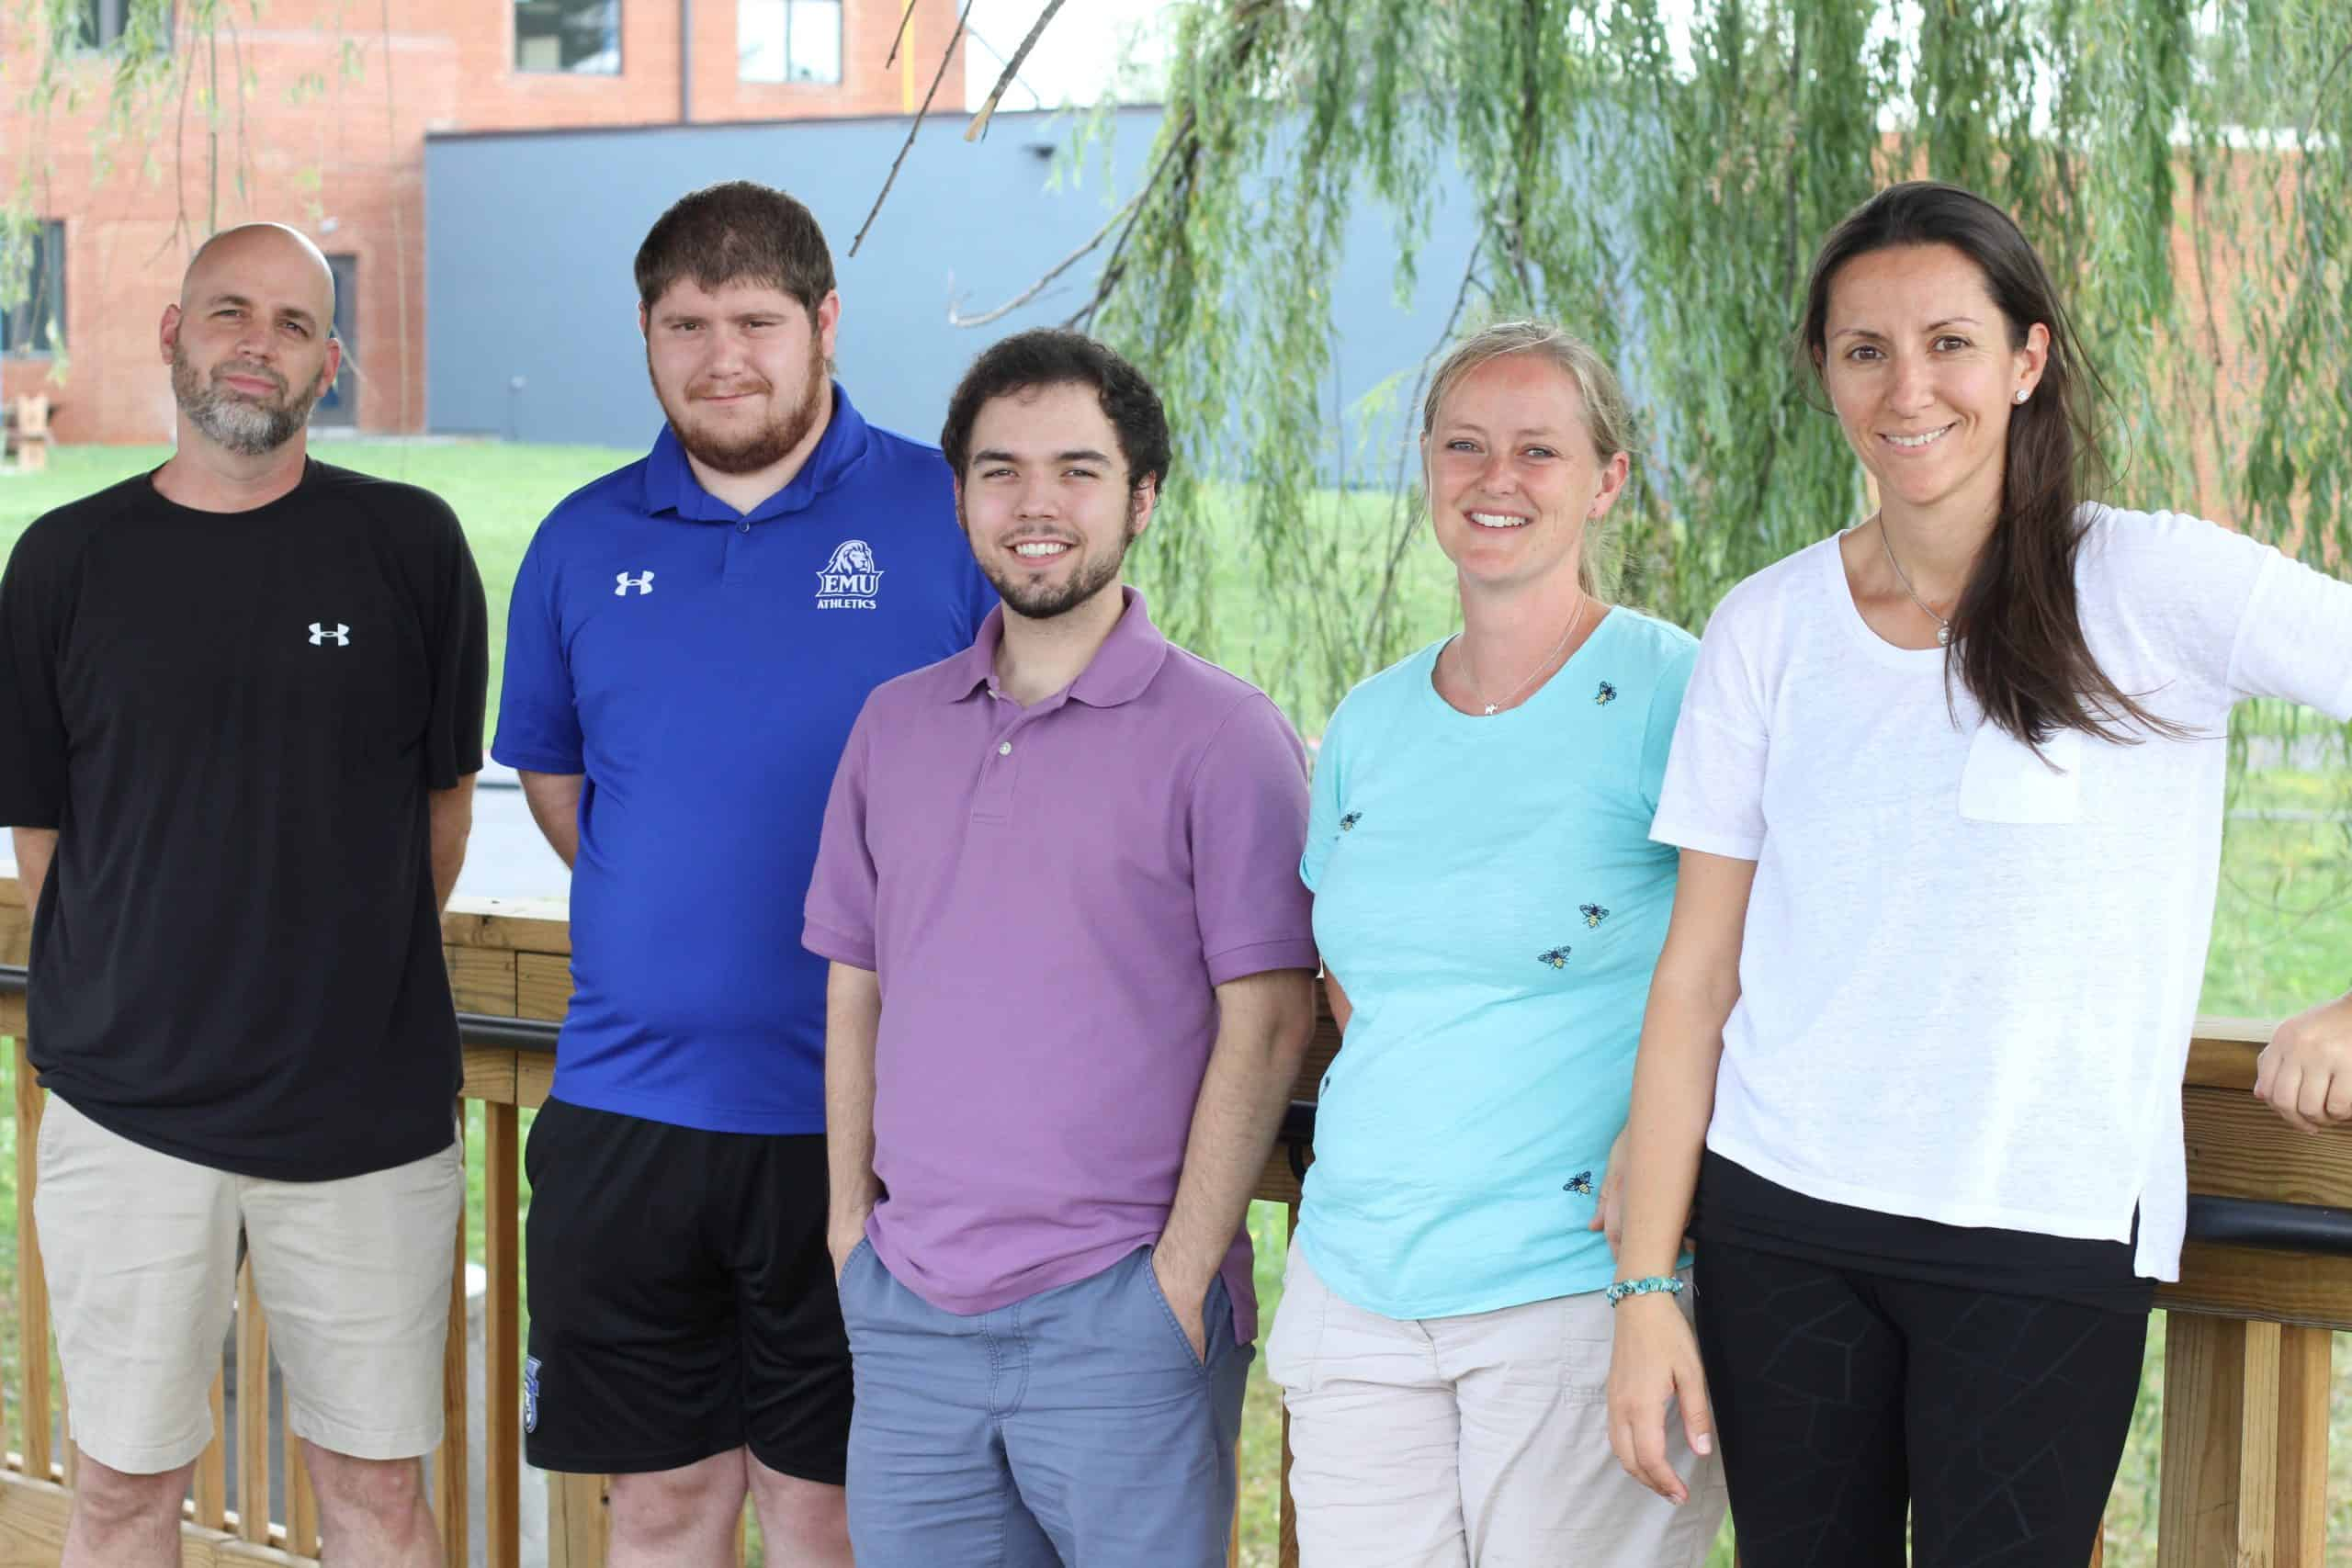 New employees for fall 2021, left to right: Benjamin Bixler (Bible and humanities), Matthew Overacker (physical education), Lucas Wenger (mathematics), Karen Suderman (English for International Students and Bible), Eliz Ozcan (International Student Officer). Not pictured: Nathan Hershberger (social studies), Oscar Erazo (fleet and grounds manager).